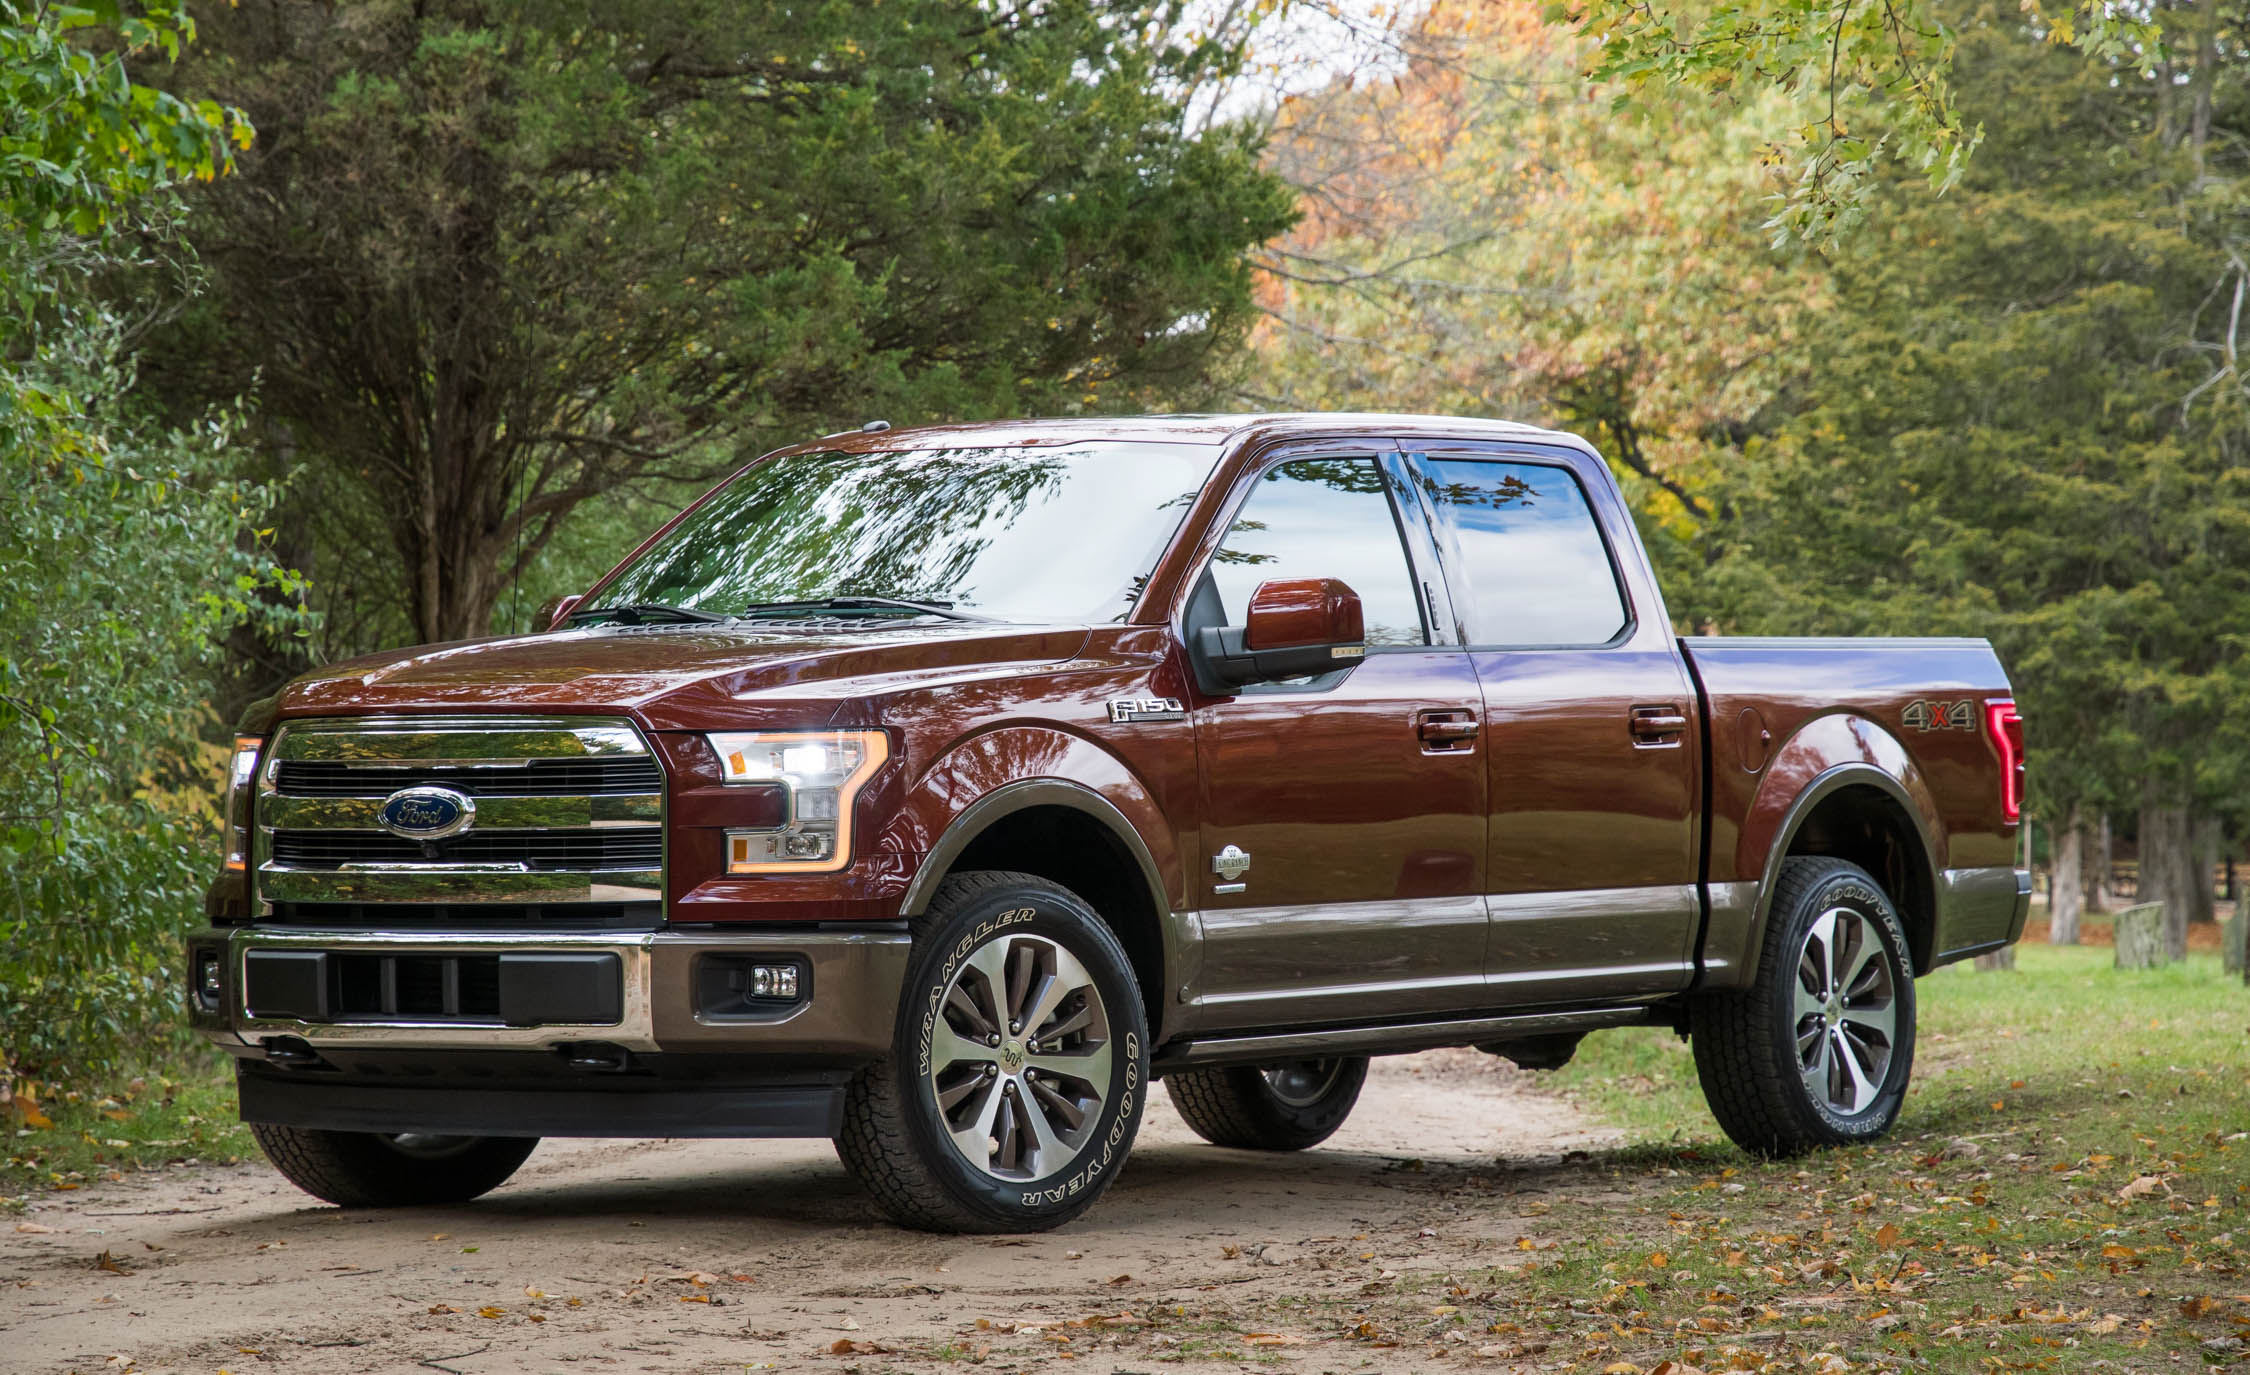 2017 Ford F-150 | Cars Exclusive Videos and Photos Updates